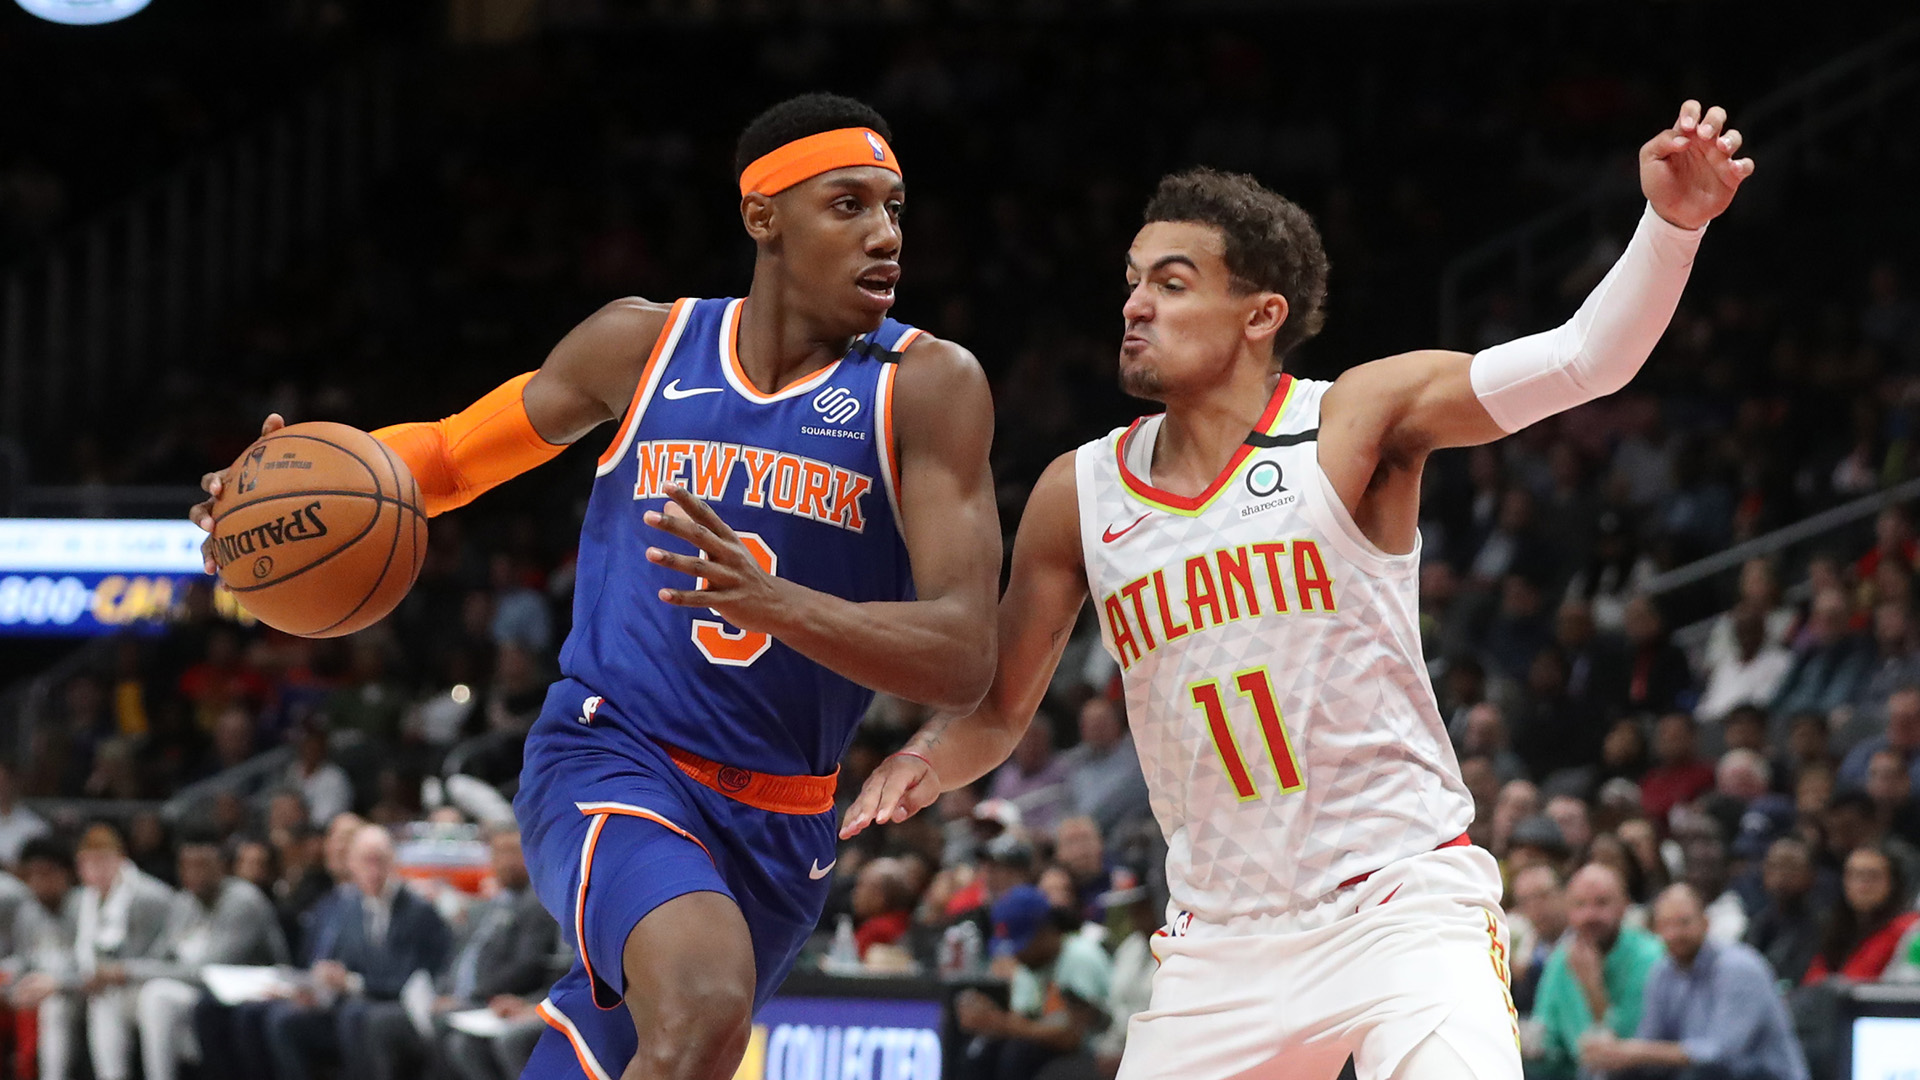 Young, Hawks look to slow down surging Knicks